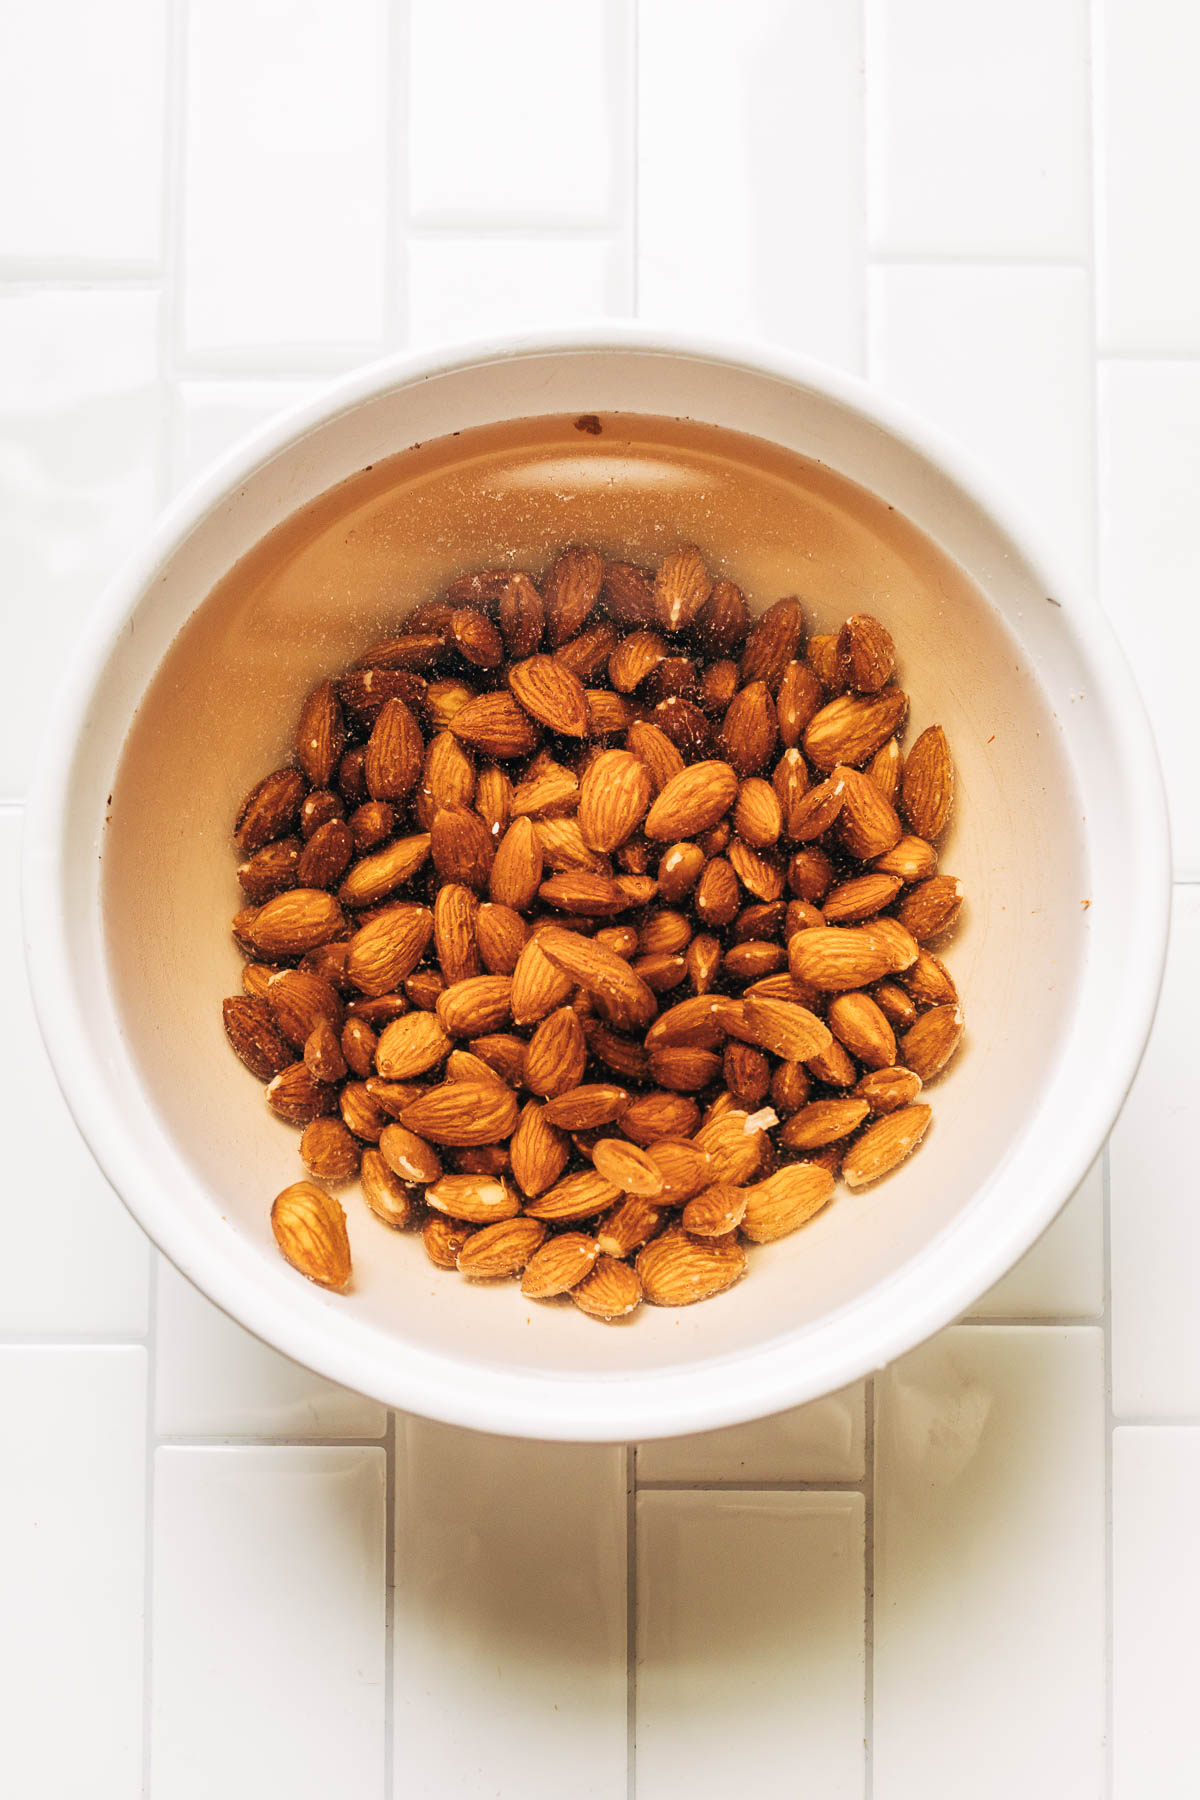 A bowl of almonds soaking in water.